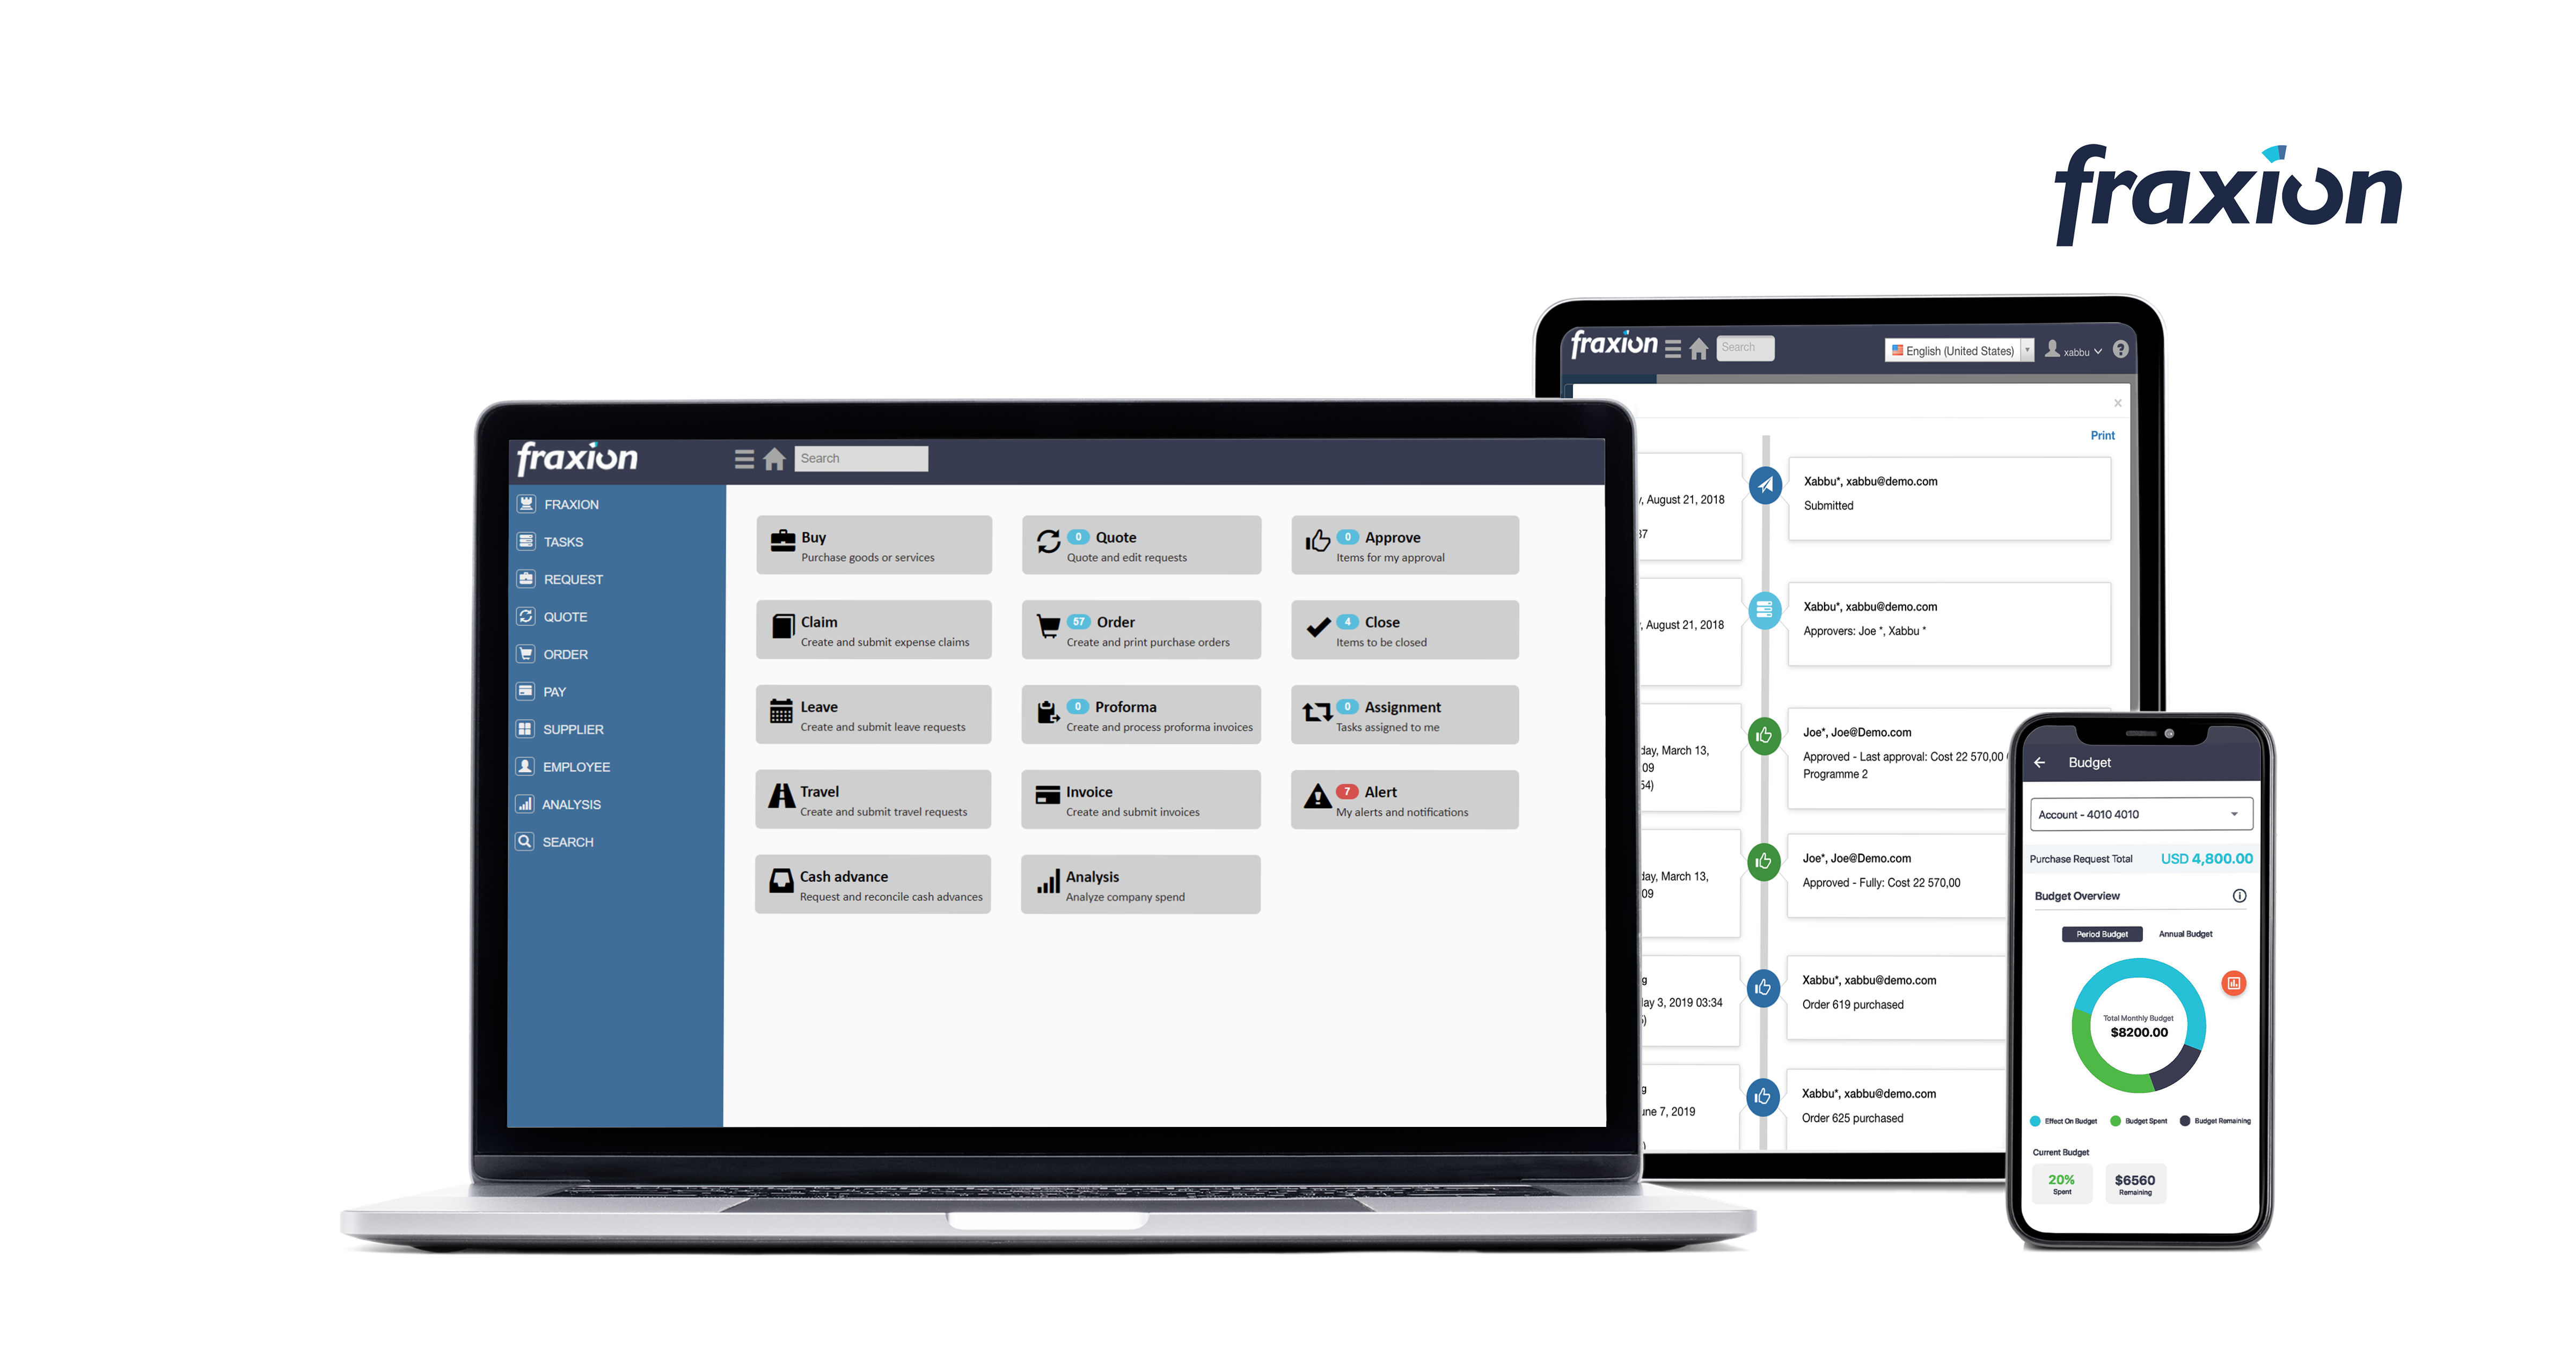 Fraxion Software - Spend visibility, audit trails and internal controls